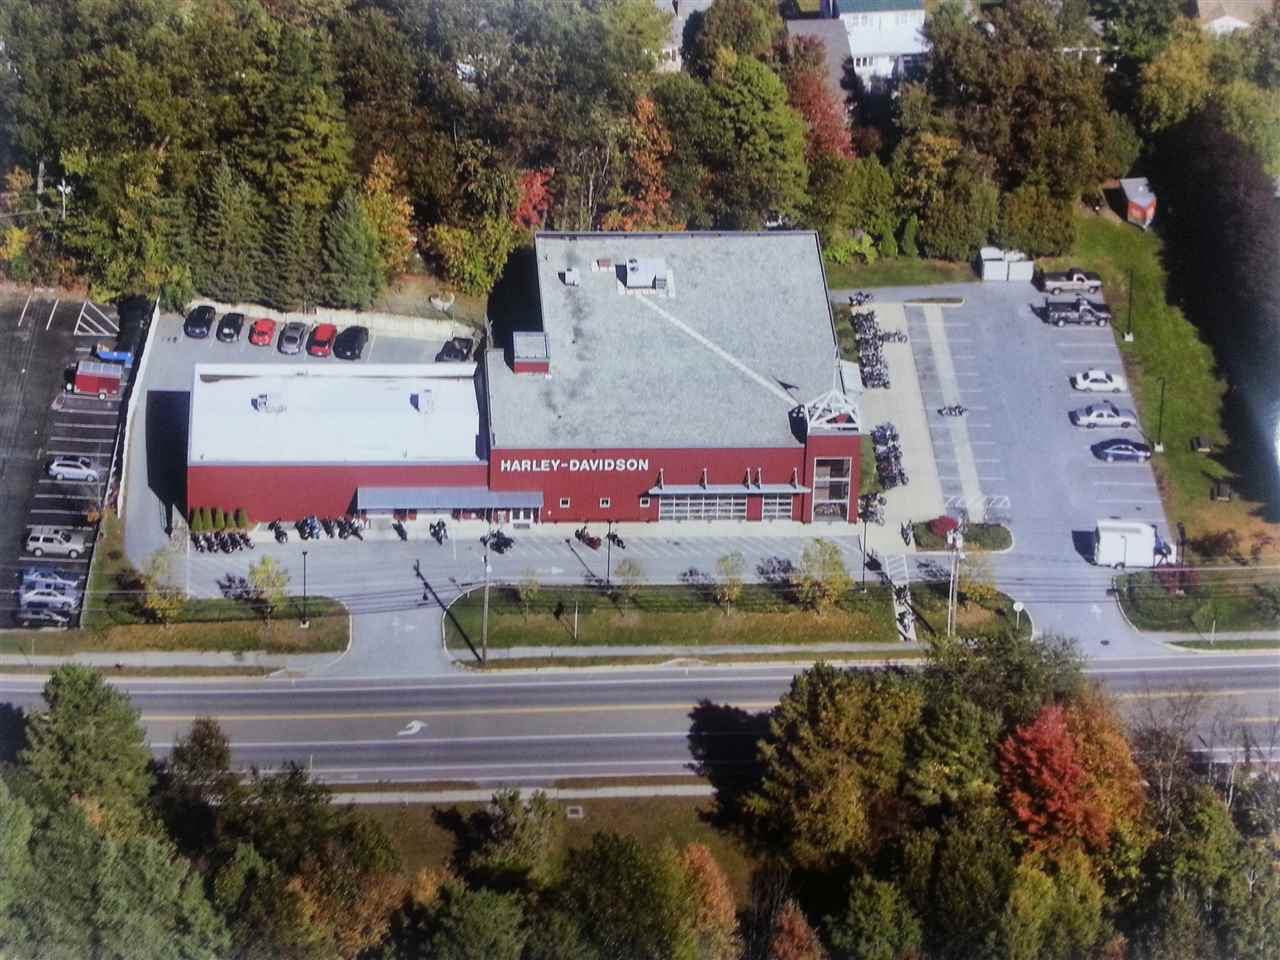 Excellent investment opportunity. Available for sale or lease (available for lease June 1). High visibility location with 325 feet road frontage on busy Route 15. Well maintained structure and grounds. Open floor plan to accommodate numerous options.